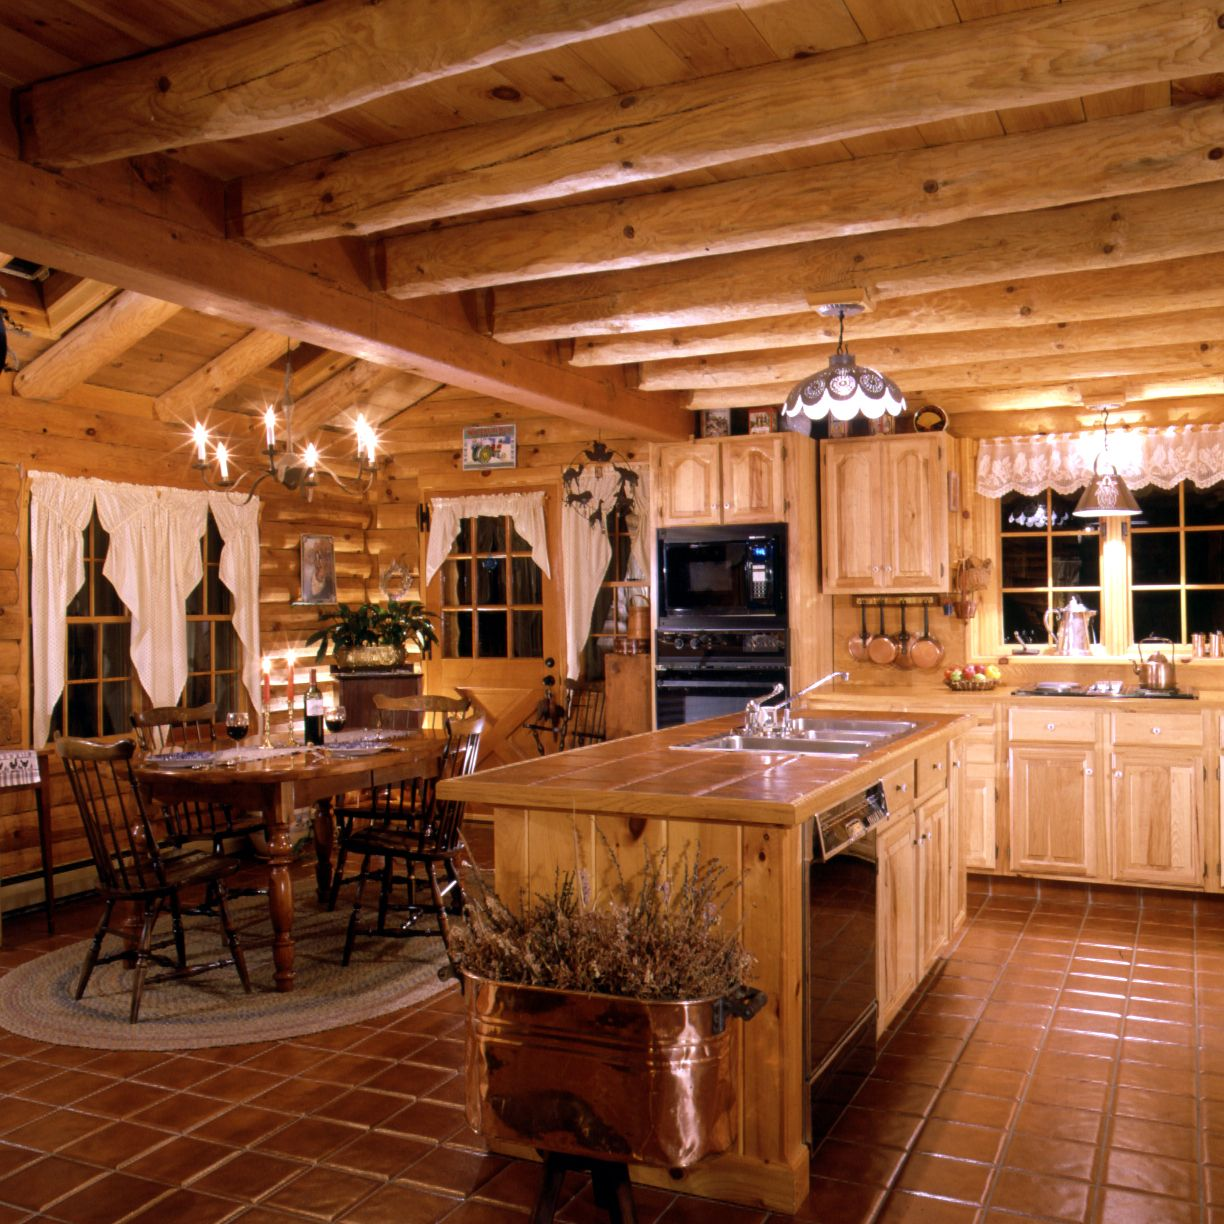 Image Of Enchanting Log Home Floor Plans Designs With Cabin Kitchen Decorating Ideas Also Bedding Quilts Small Layouts Porches